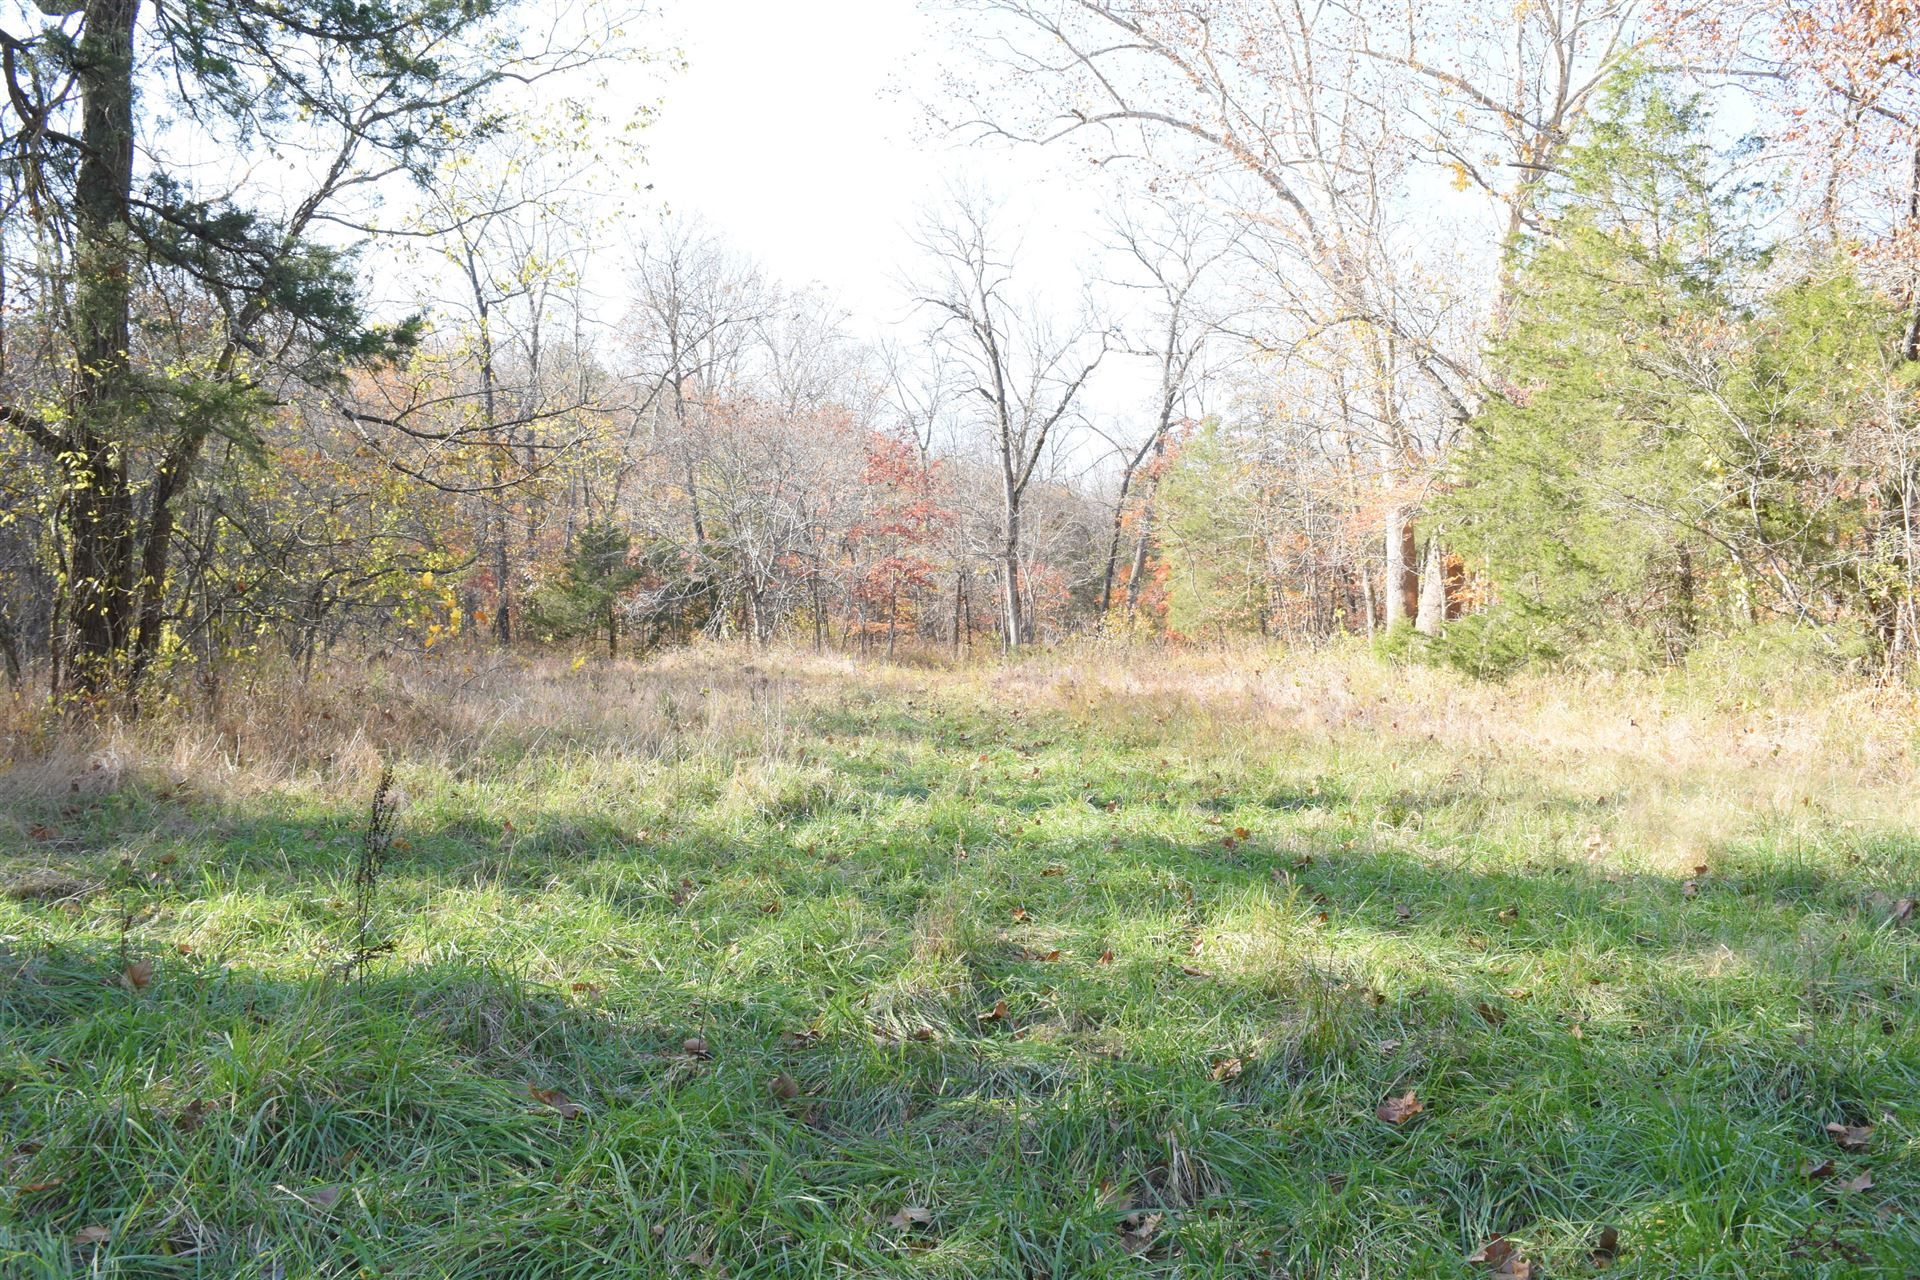 Photo of Tbd State Hwy Jj, Hollister, MO 65672 (MLS # 60177845)